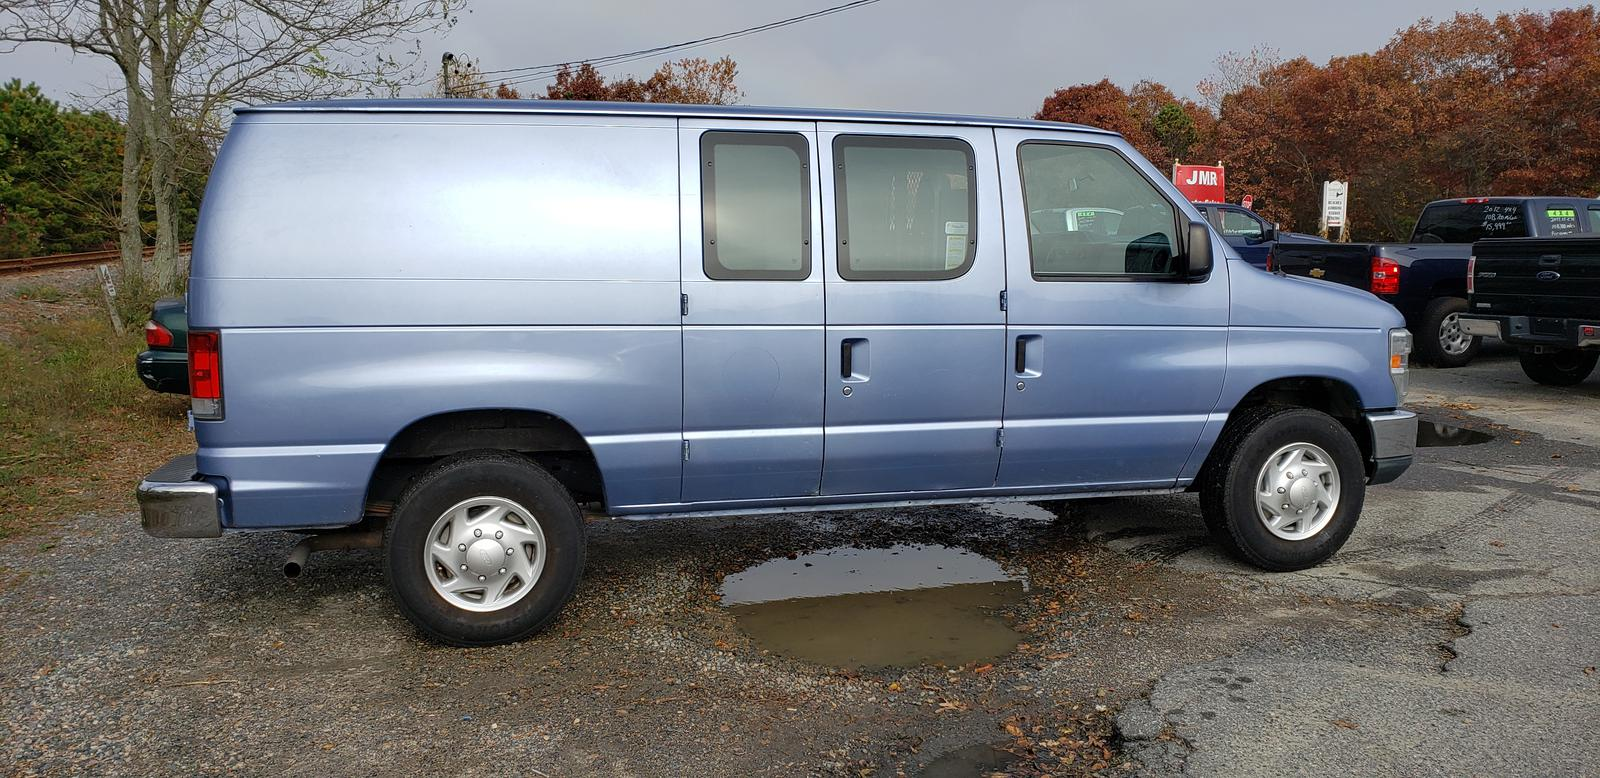 Cargo Van For Sale By Owner >> 2011 Ford Ford E250 Cargo Van 1 Owner 83900 Miles